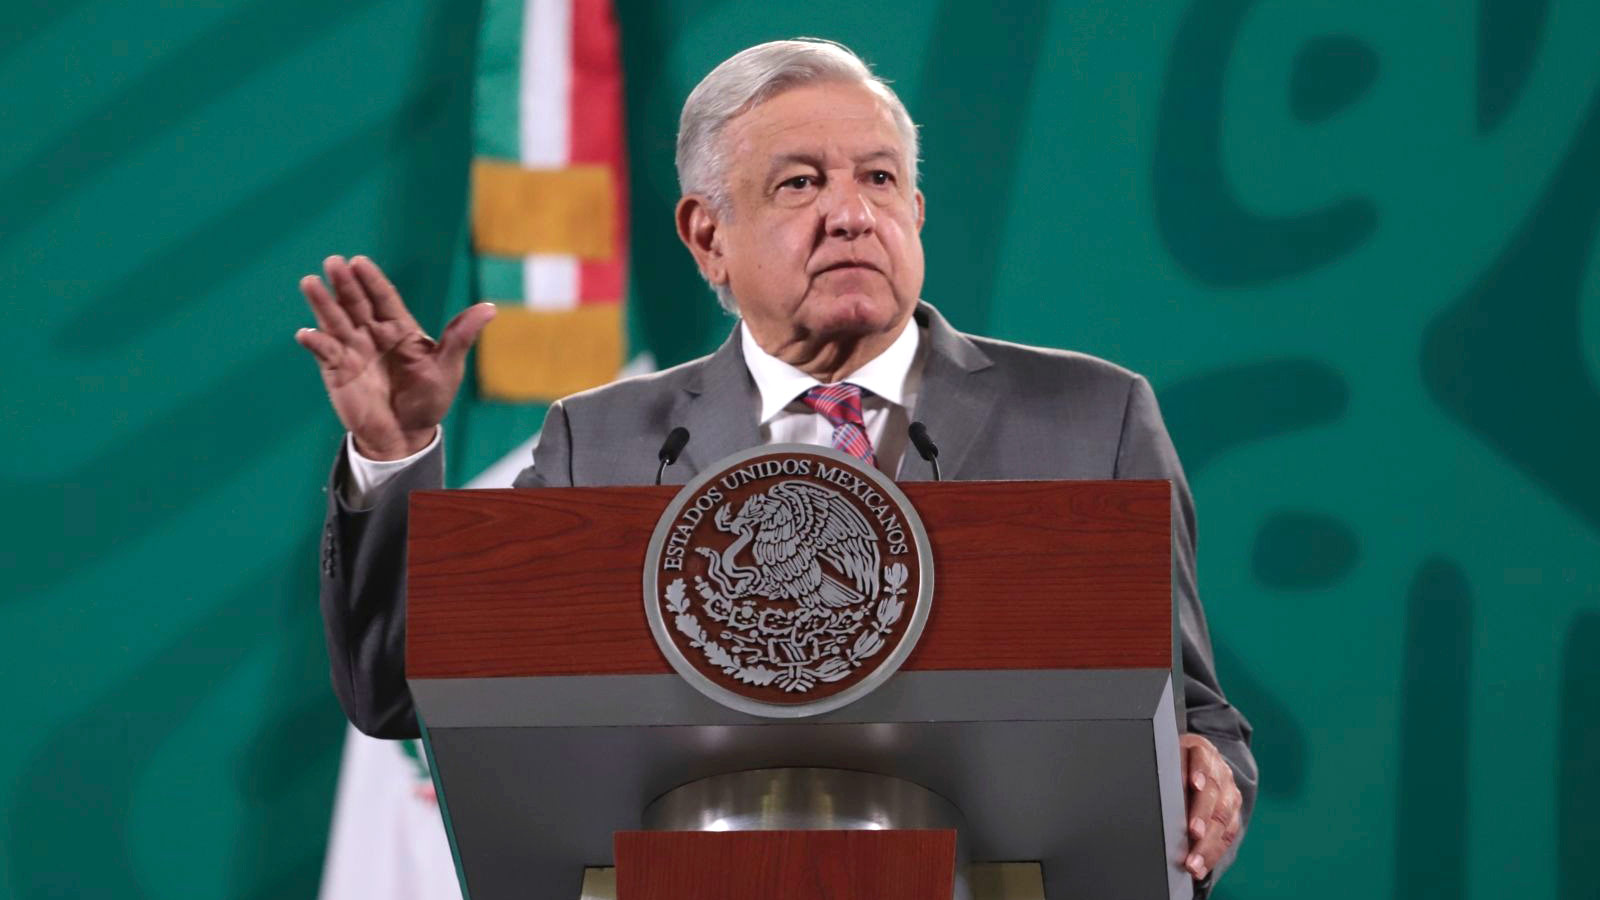 Mexico's President Andrés Manuel López Obrador speaks during a news conference on April 26, in Mexico City.